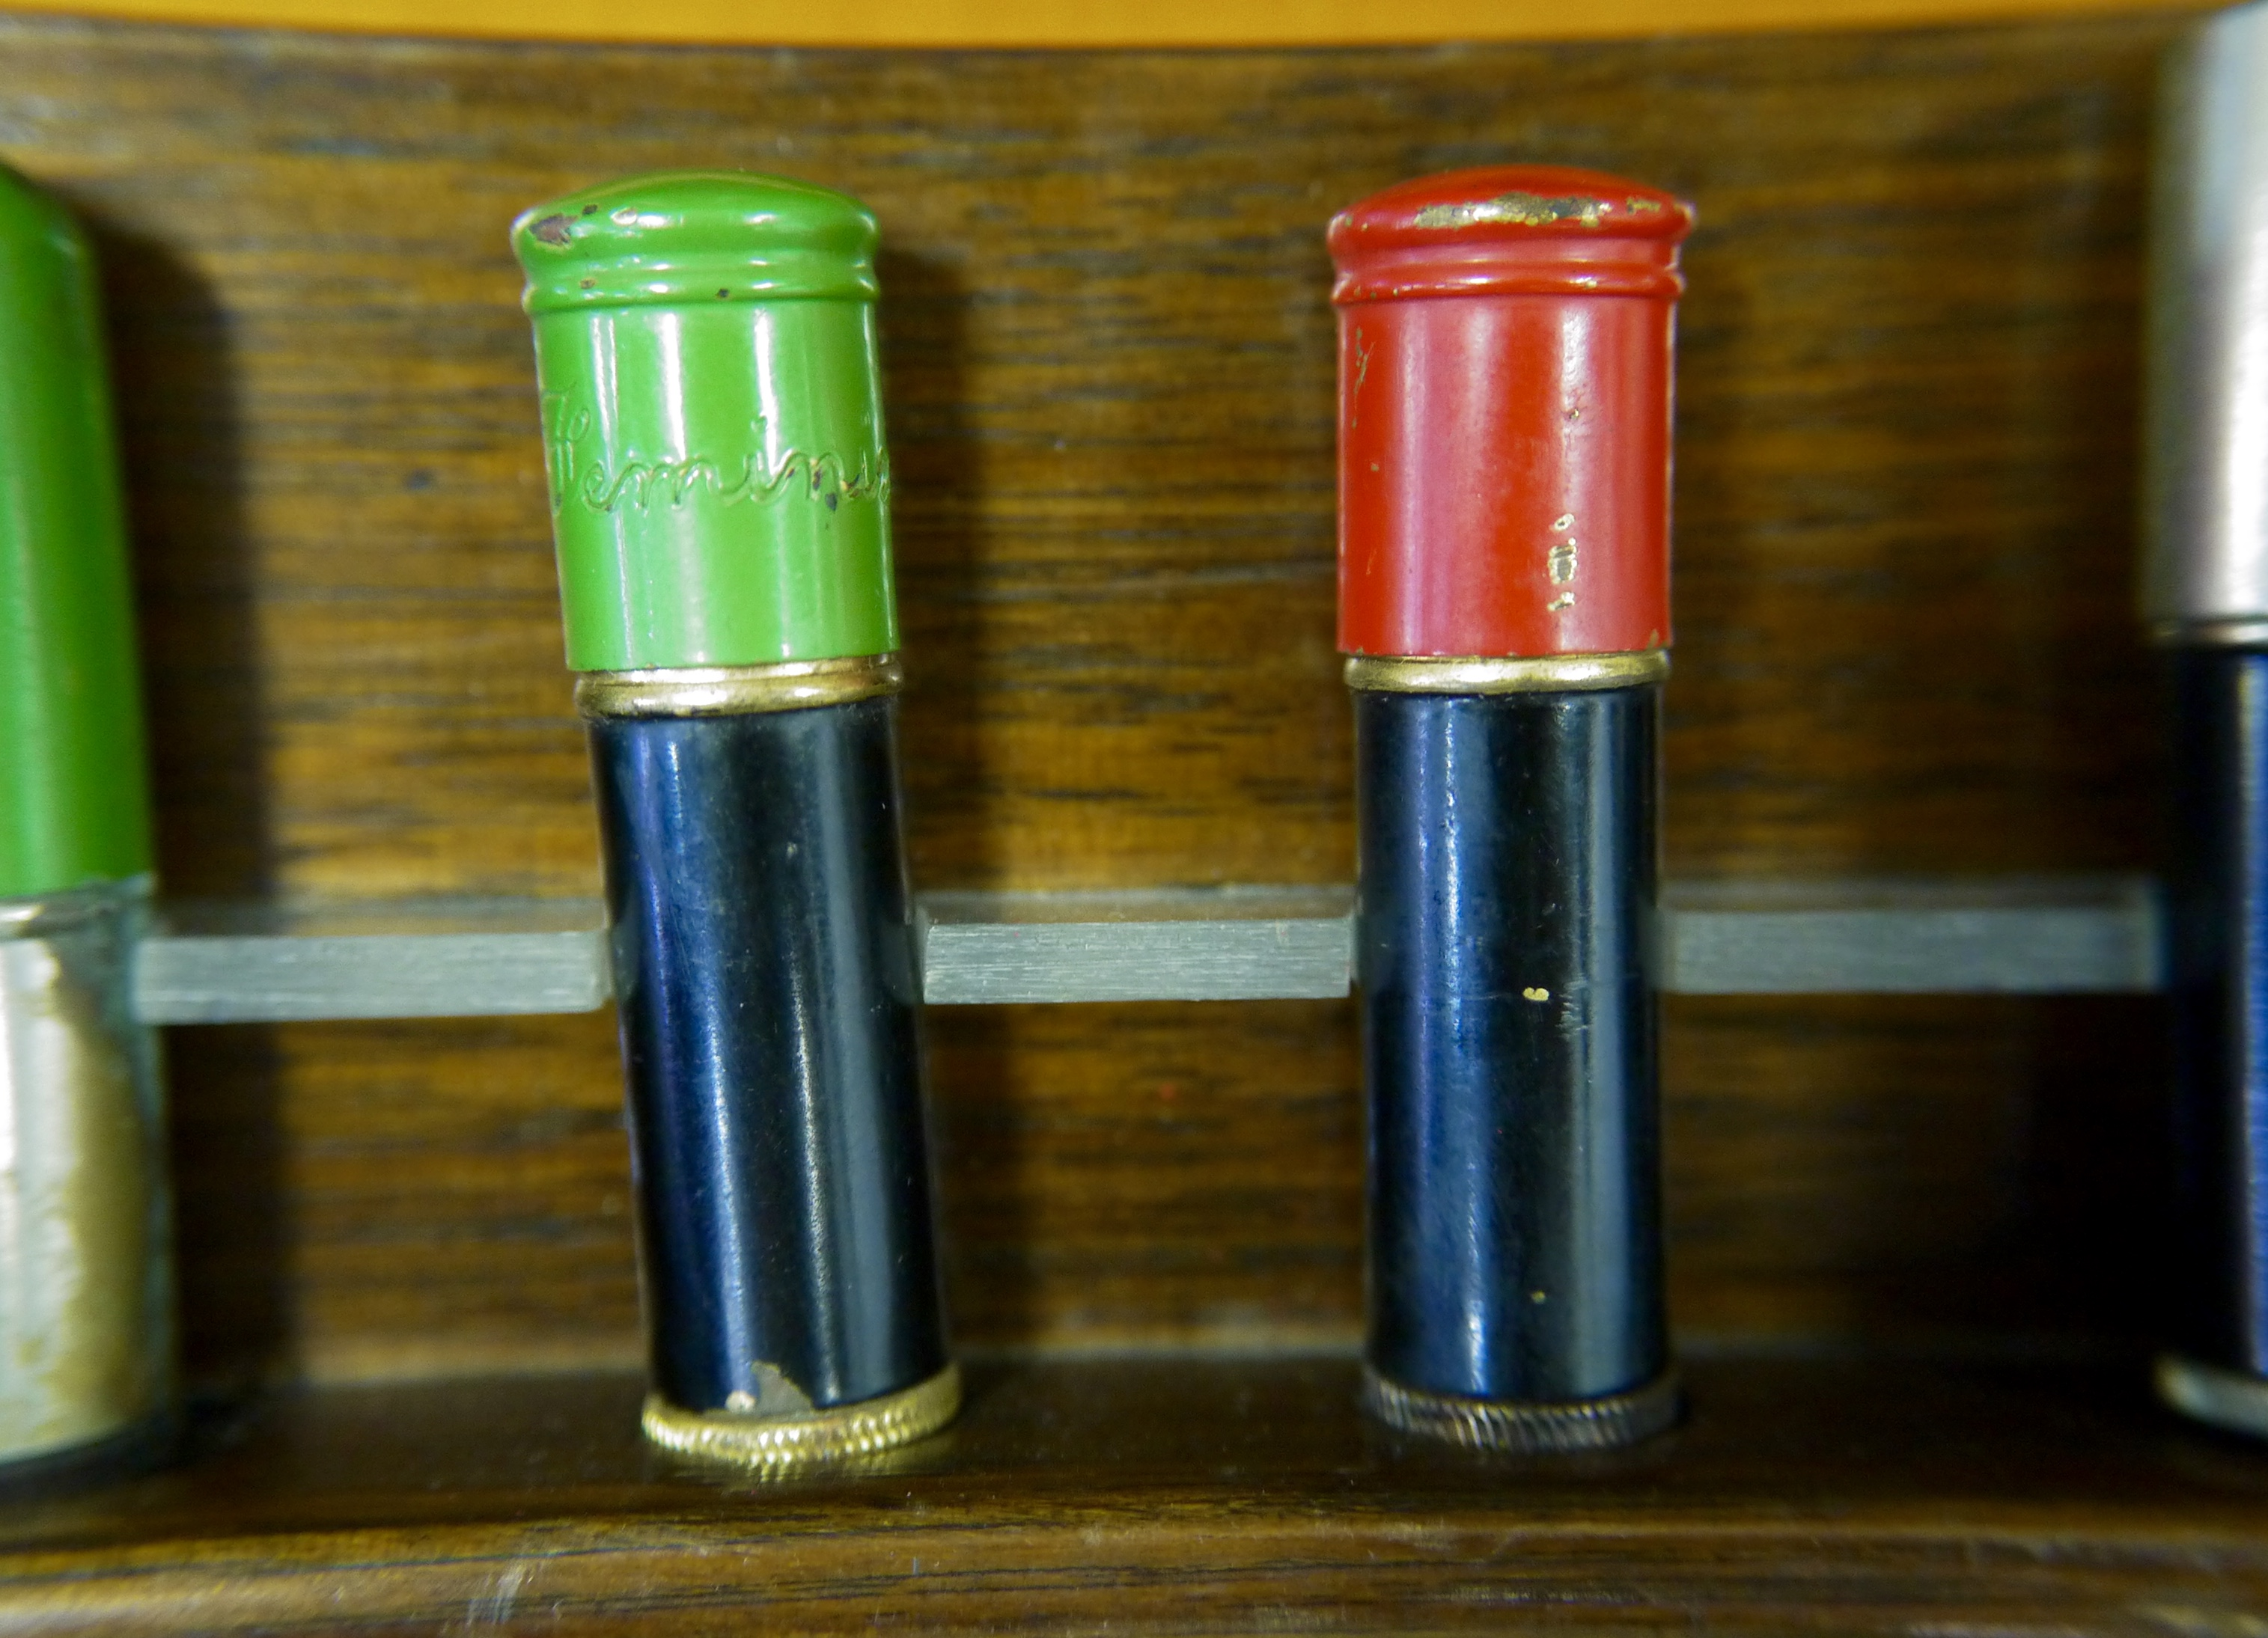 A shared history: between the wars, bullet cartridges were refashioned in munitions factories.